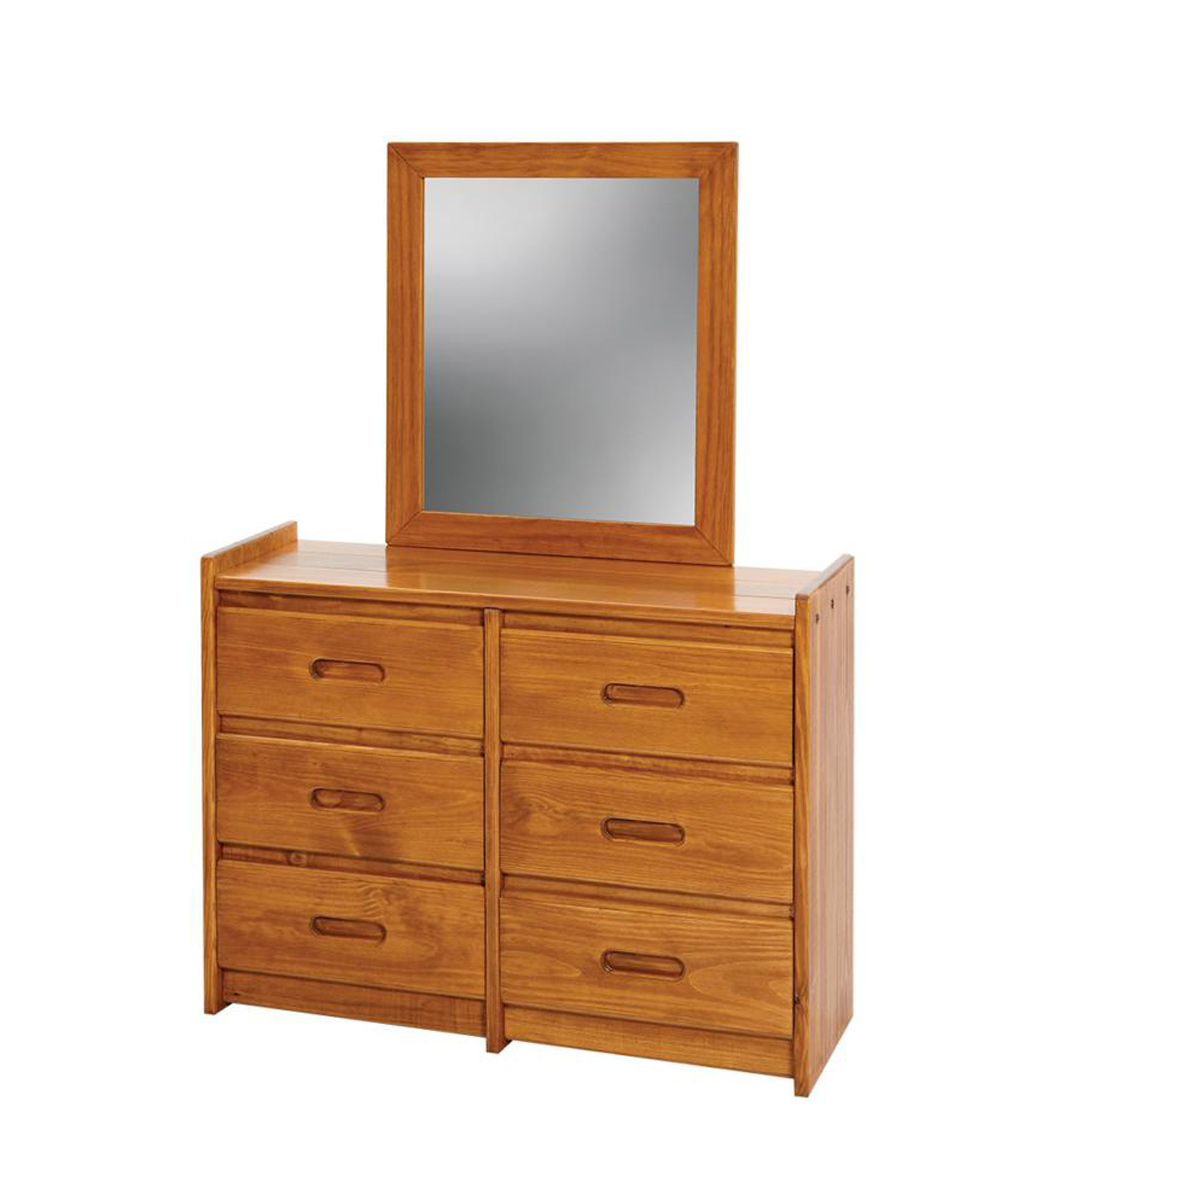 Chelsea Home 360066-011 6 Drawer Dresser with Mirror - Honey